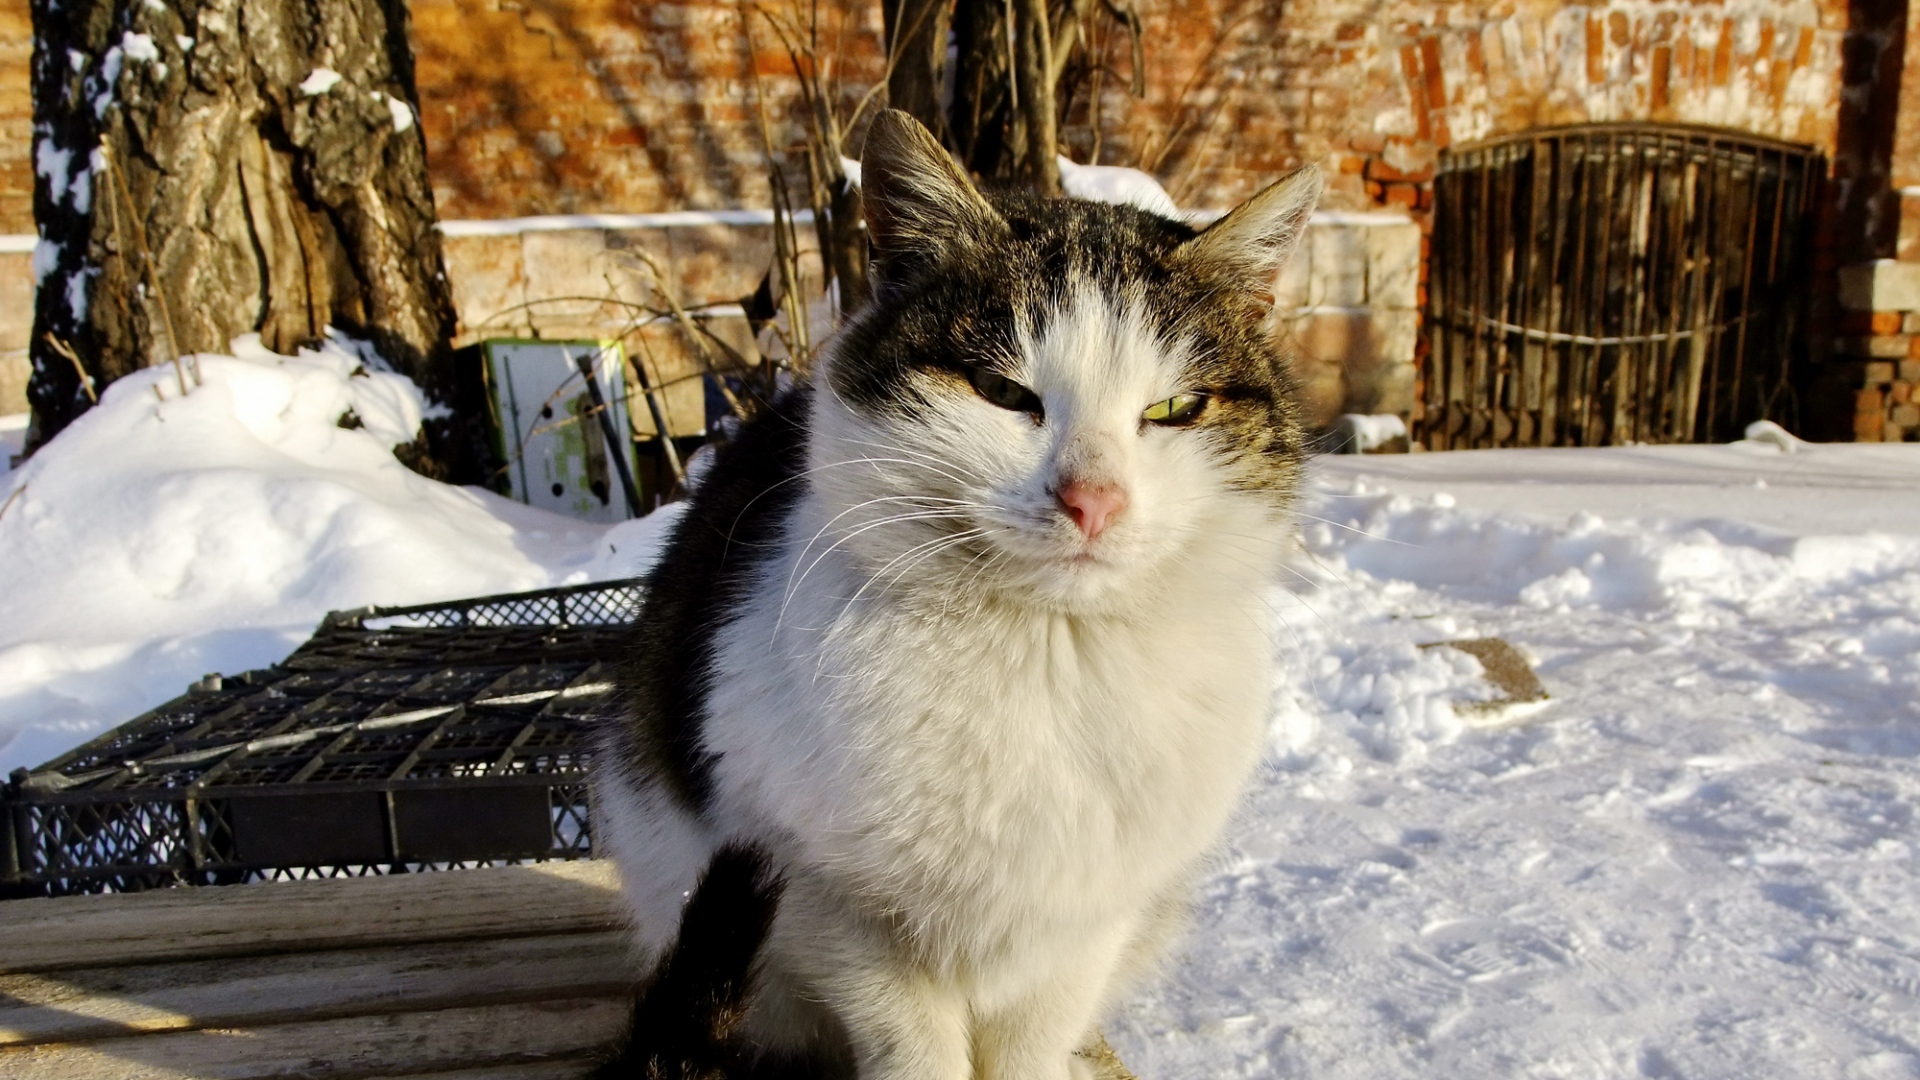 Earnings Disclaimer >> Download Wallpaper 1920x1080 cat, furry, homeless, snow ...